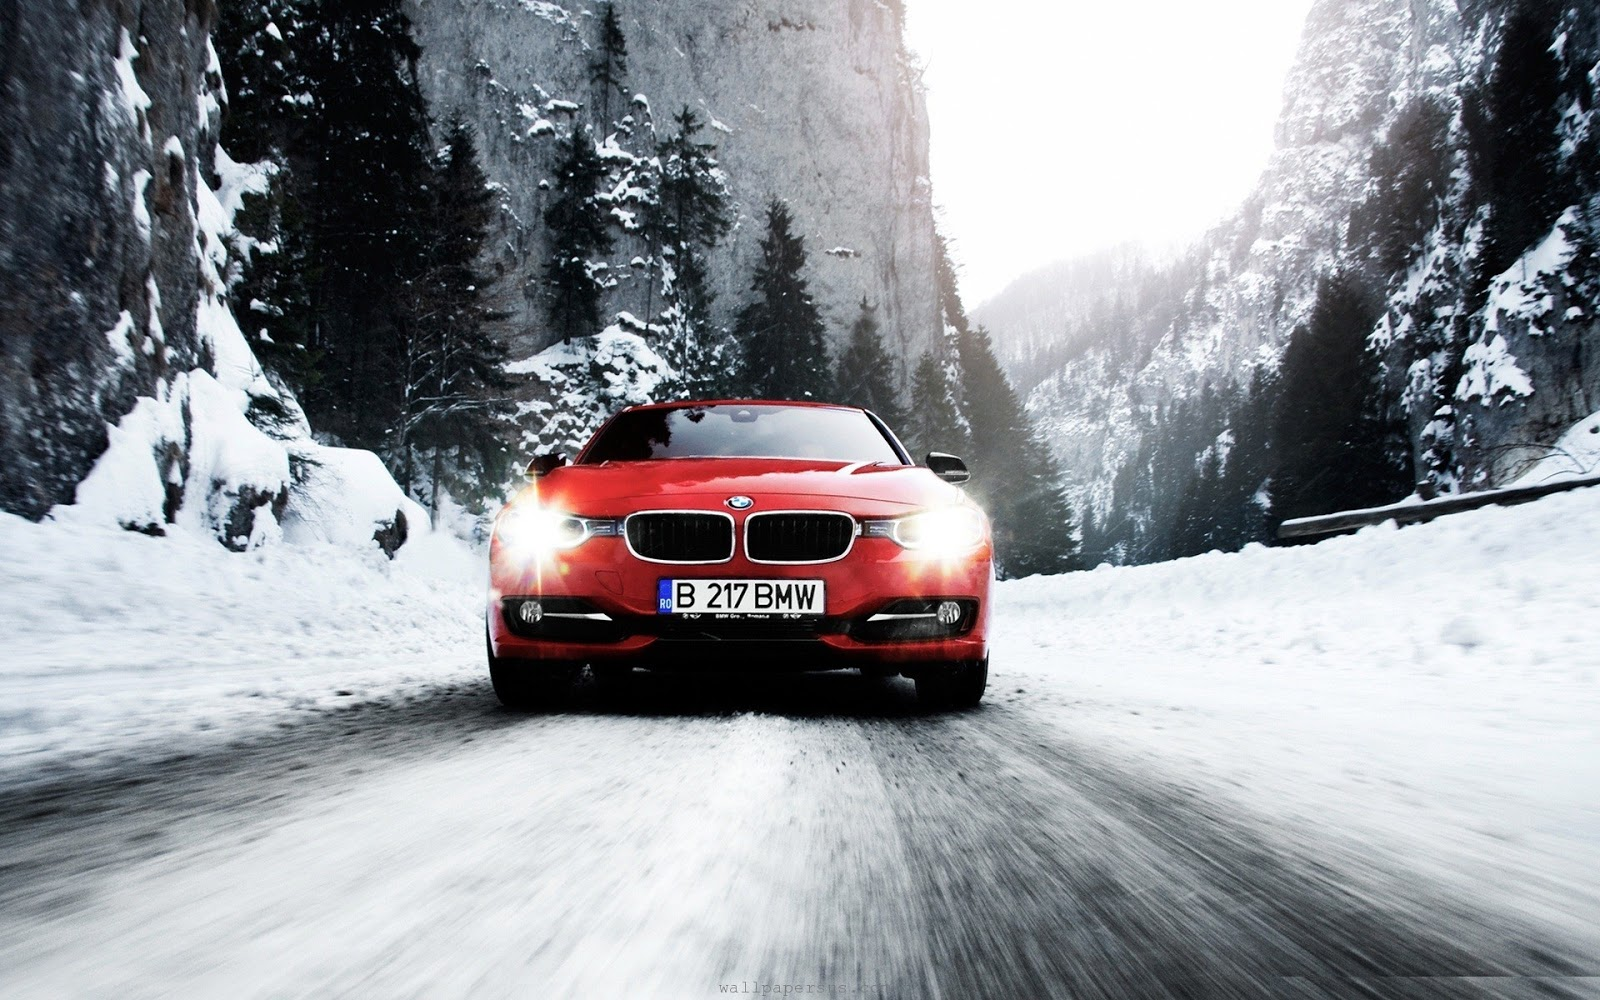 Live Winter Snow Fall Background Wallpaper Winter Snow Hd Wallpapers Wallpaper202